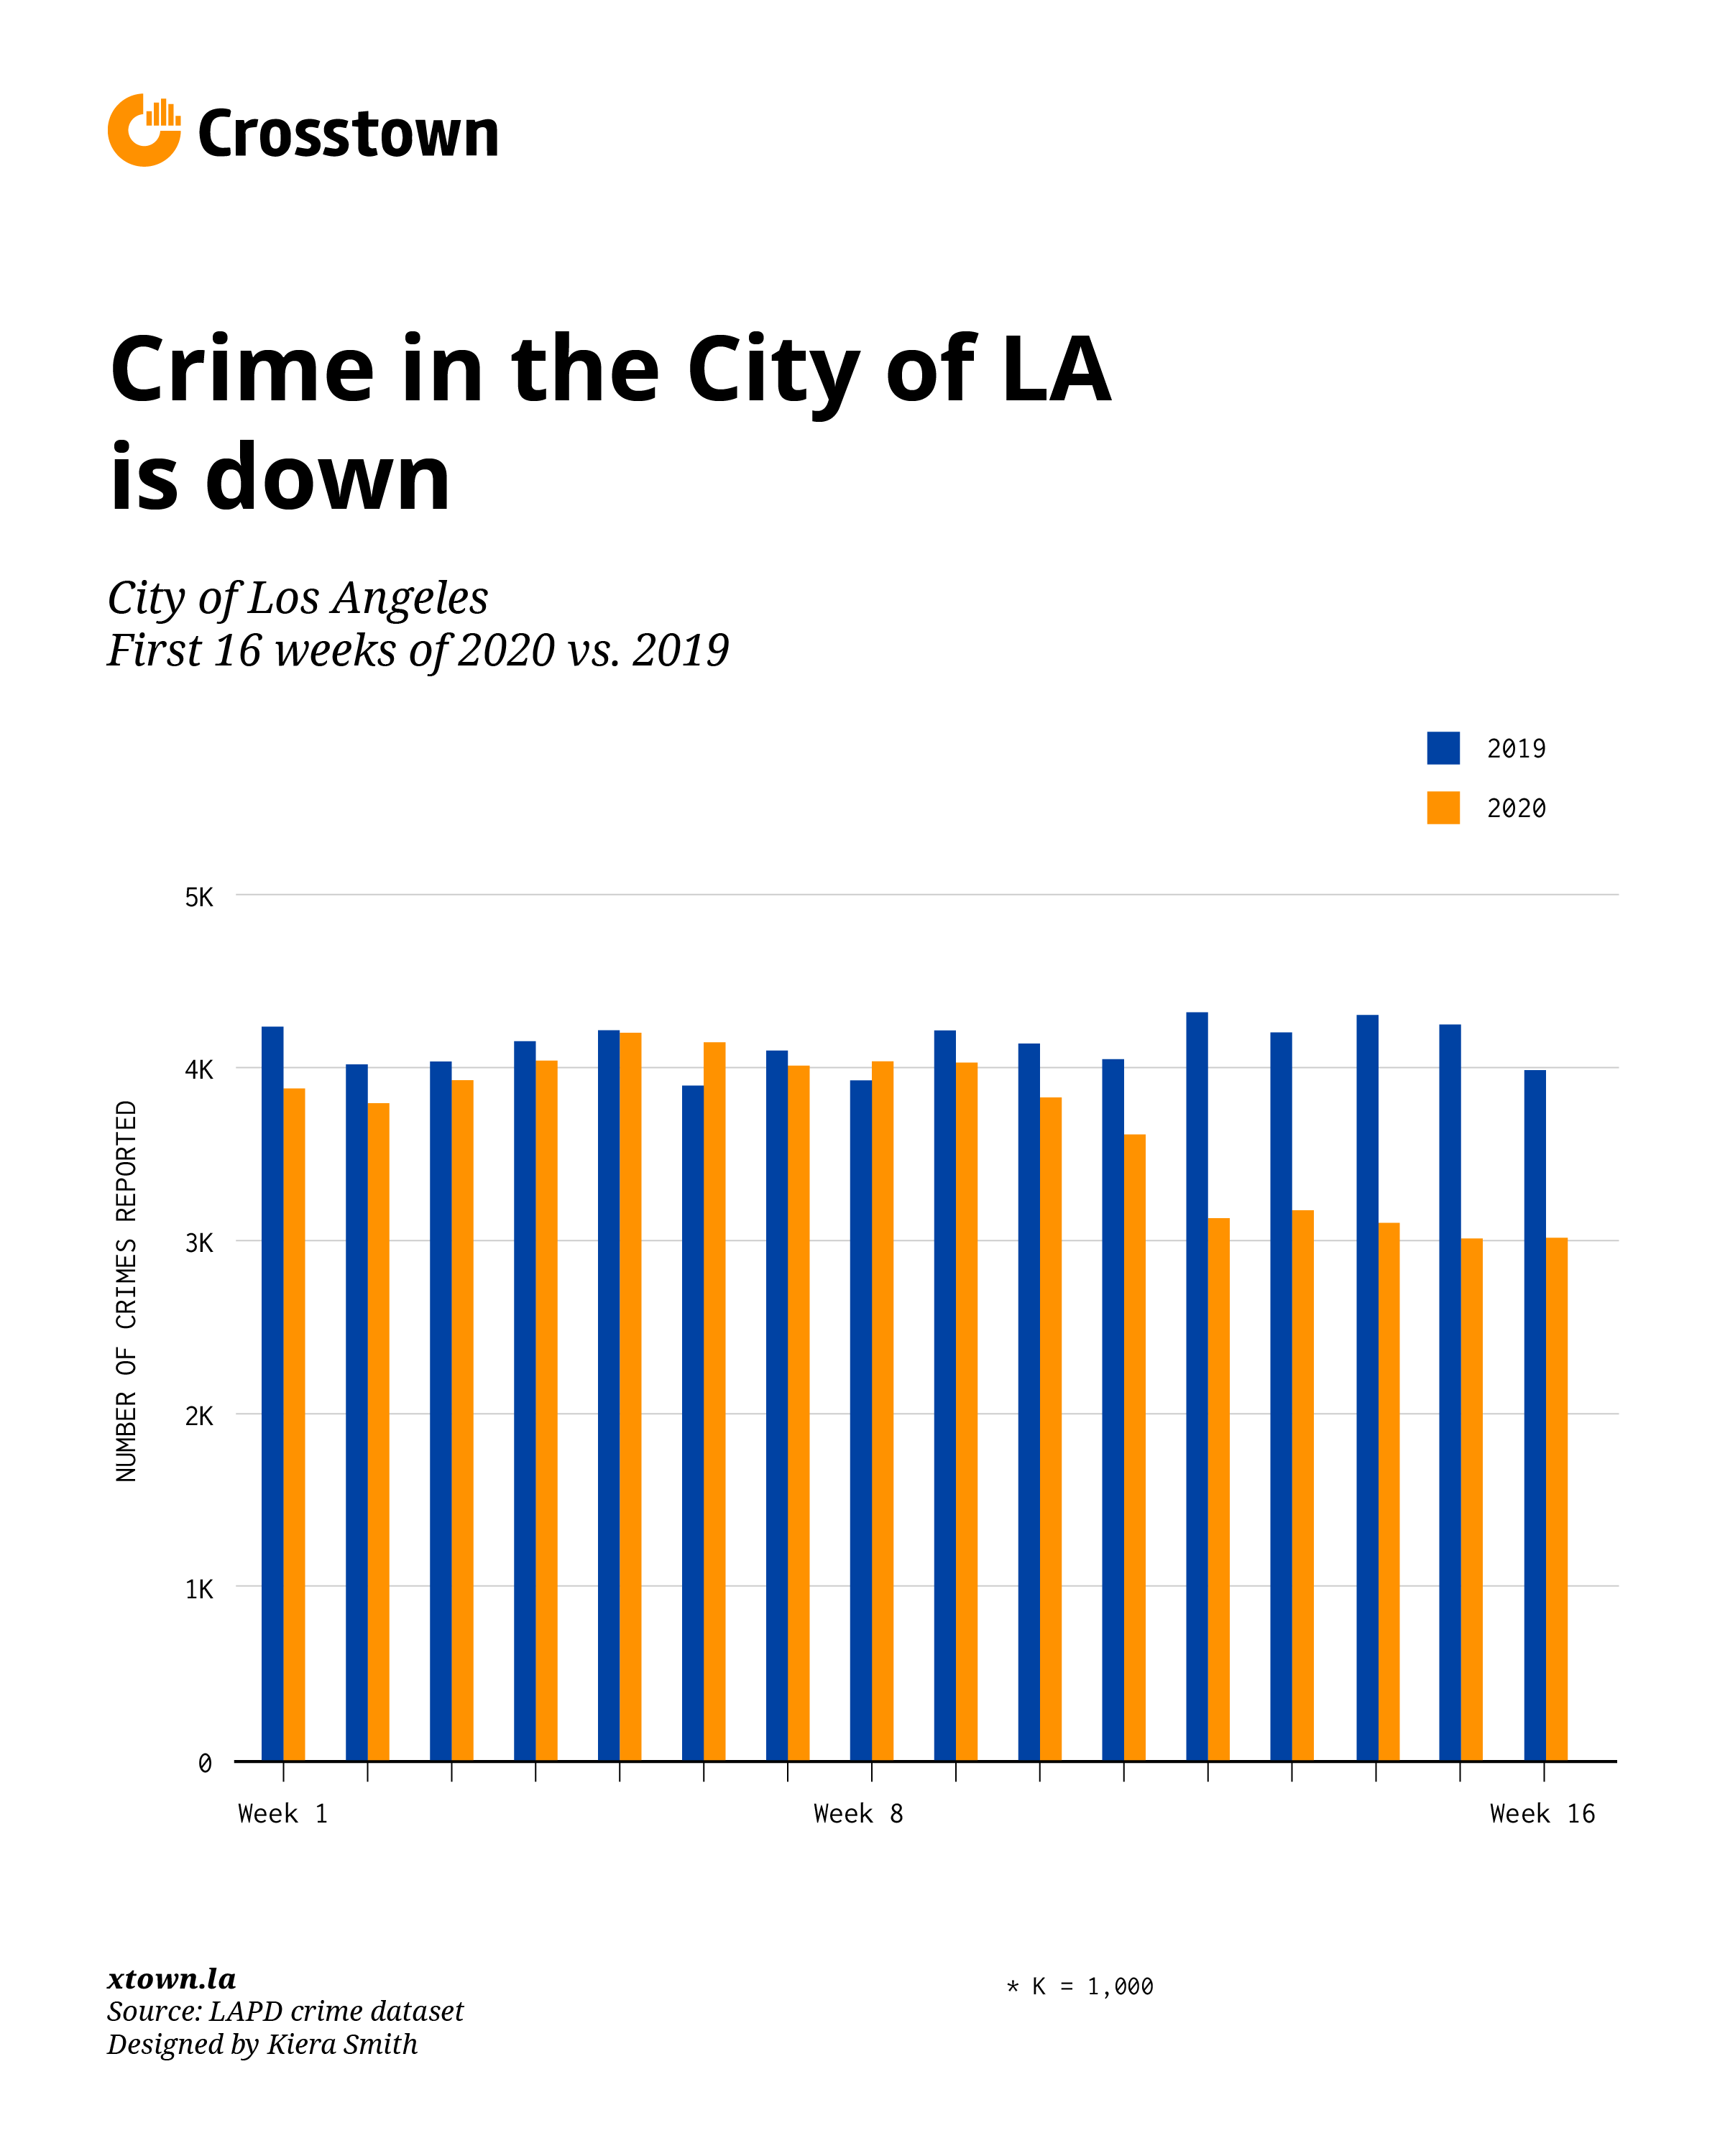 Graph comparing Los Angeles crime rate in 2019 vs. 2020